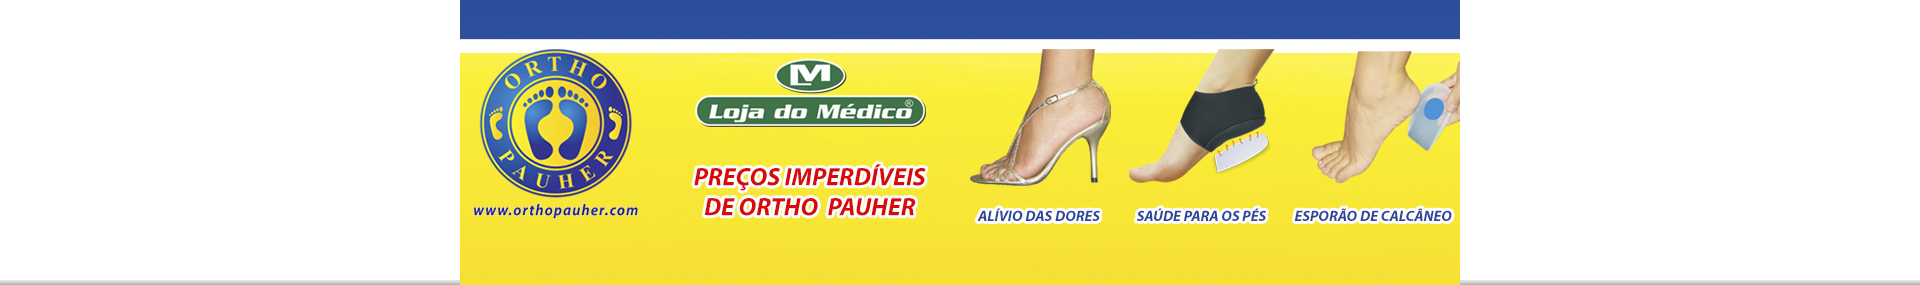 Banner Ortho Pauer